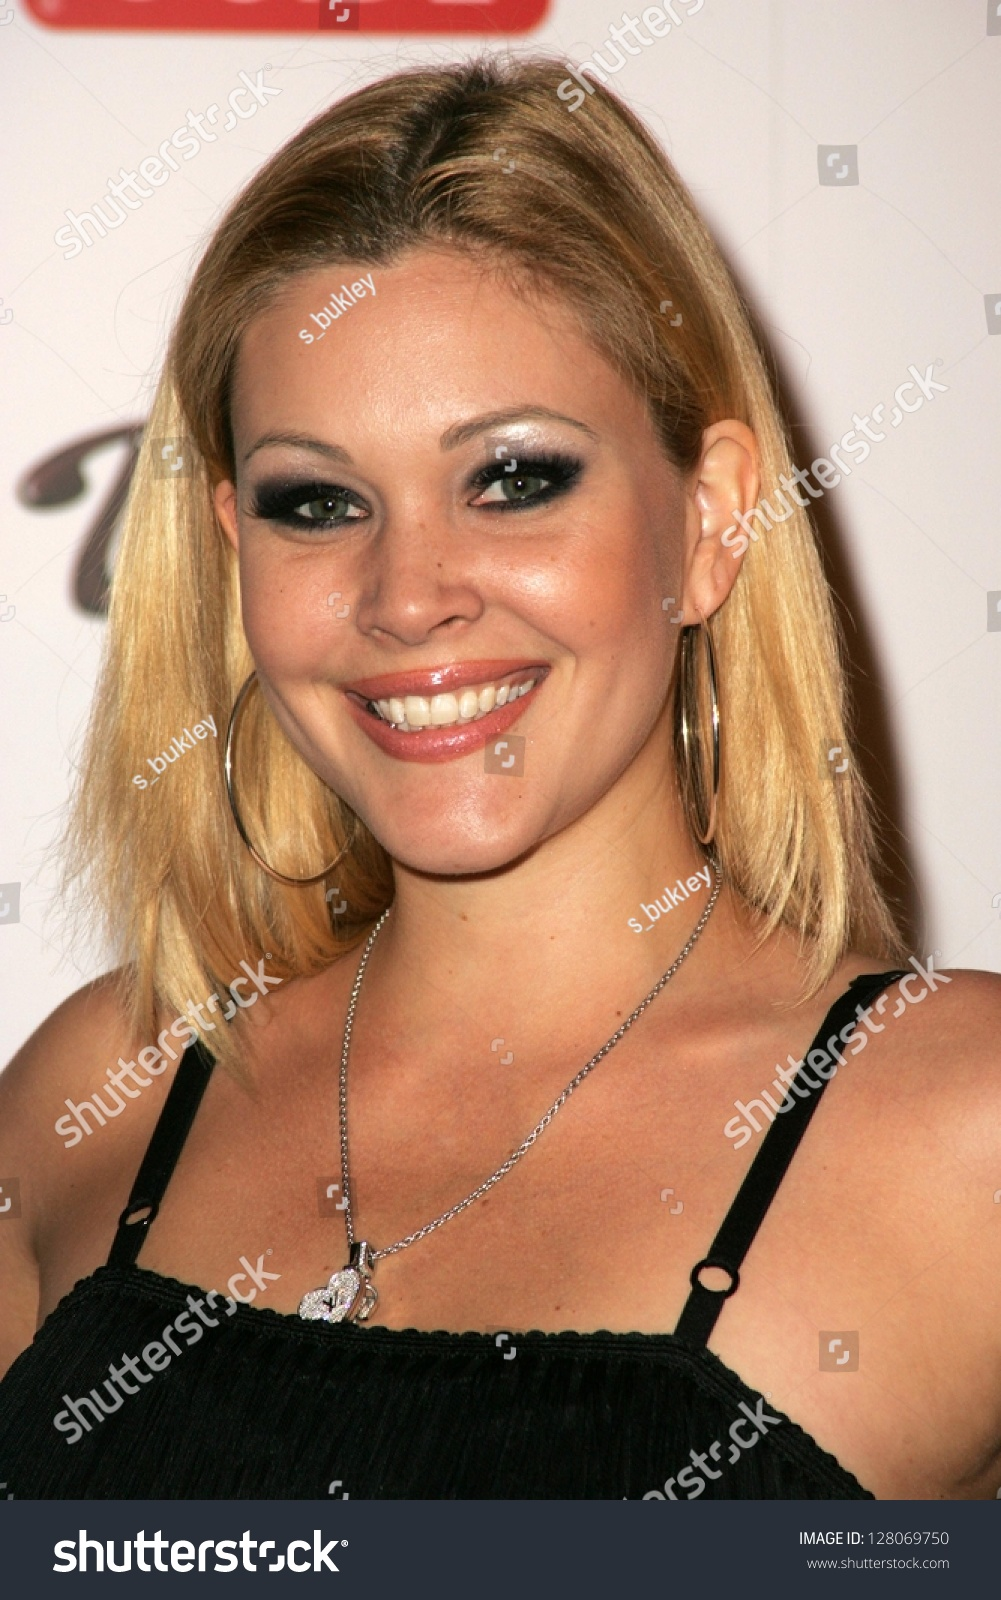 Young Shanna Moakler nudes (22 photos), Tits, Sideboobs, Instagram, legs 2020